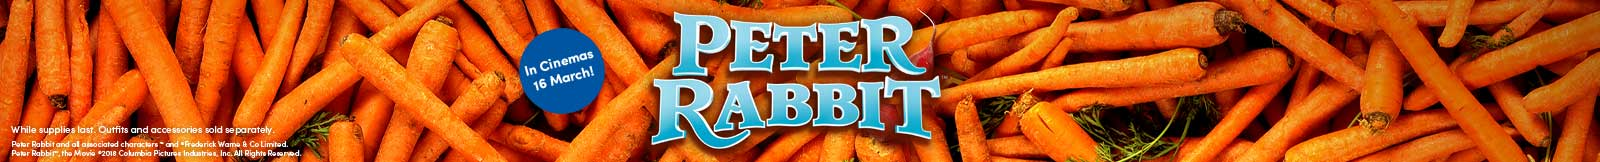 Peter Rabbit Category Banner